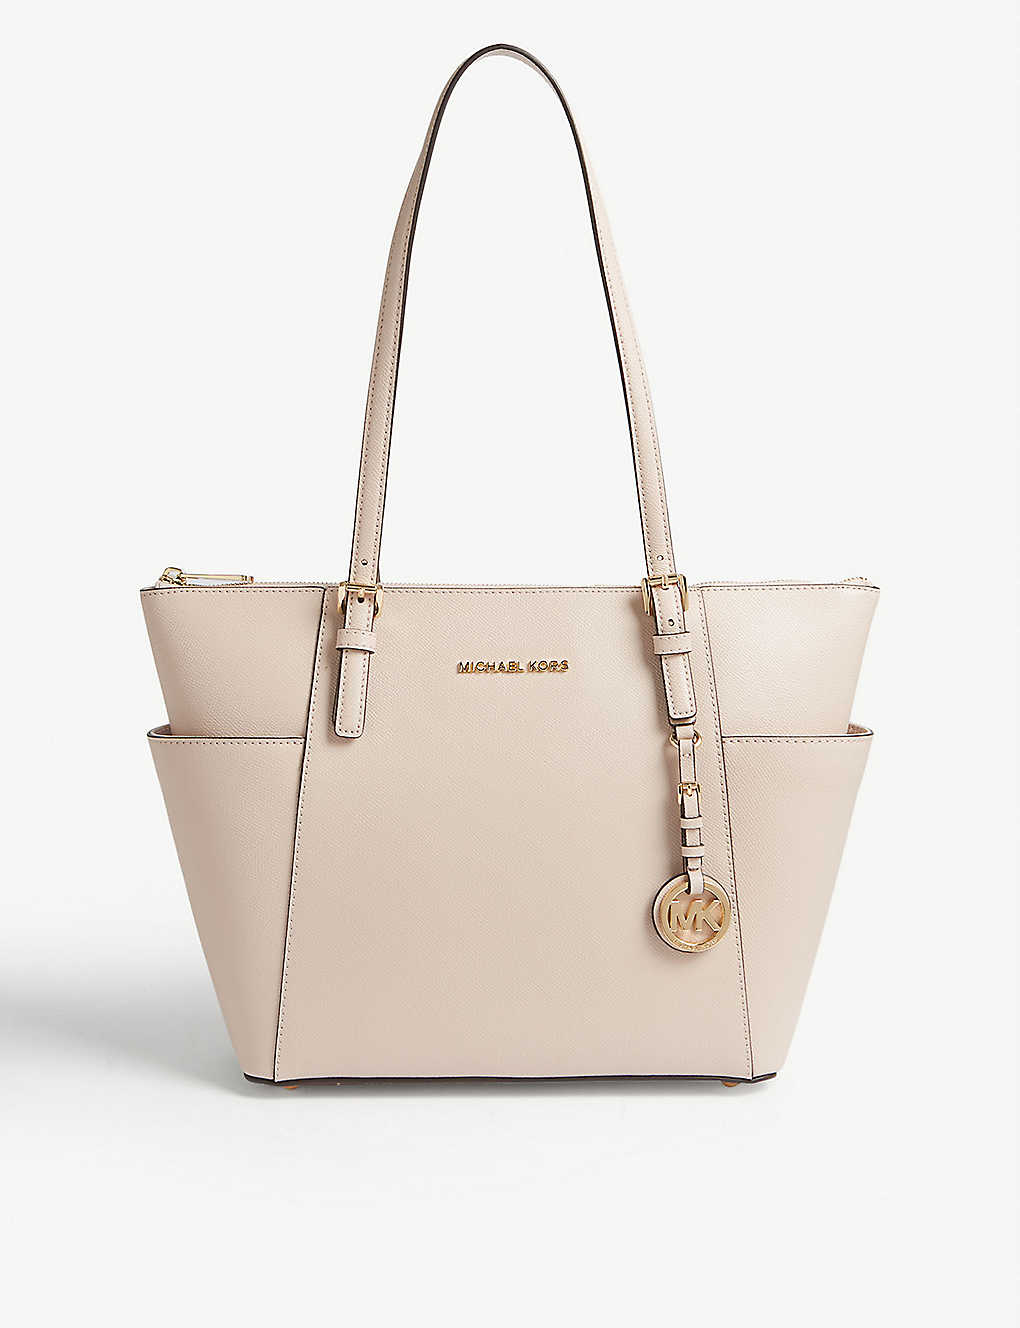 MICHAEL MICHAEL KORS: Jet Set leather tote bag